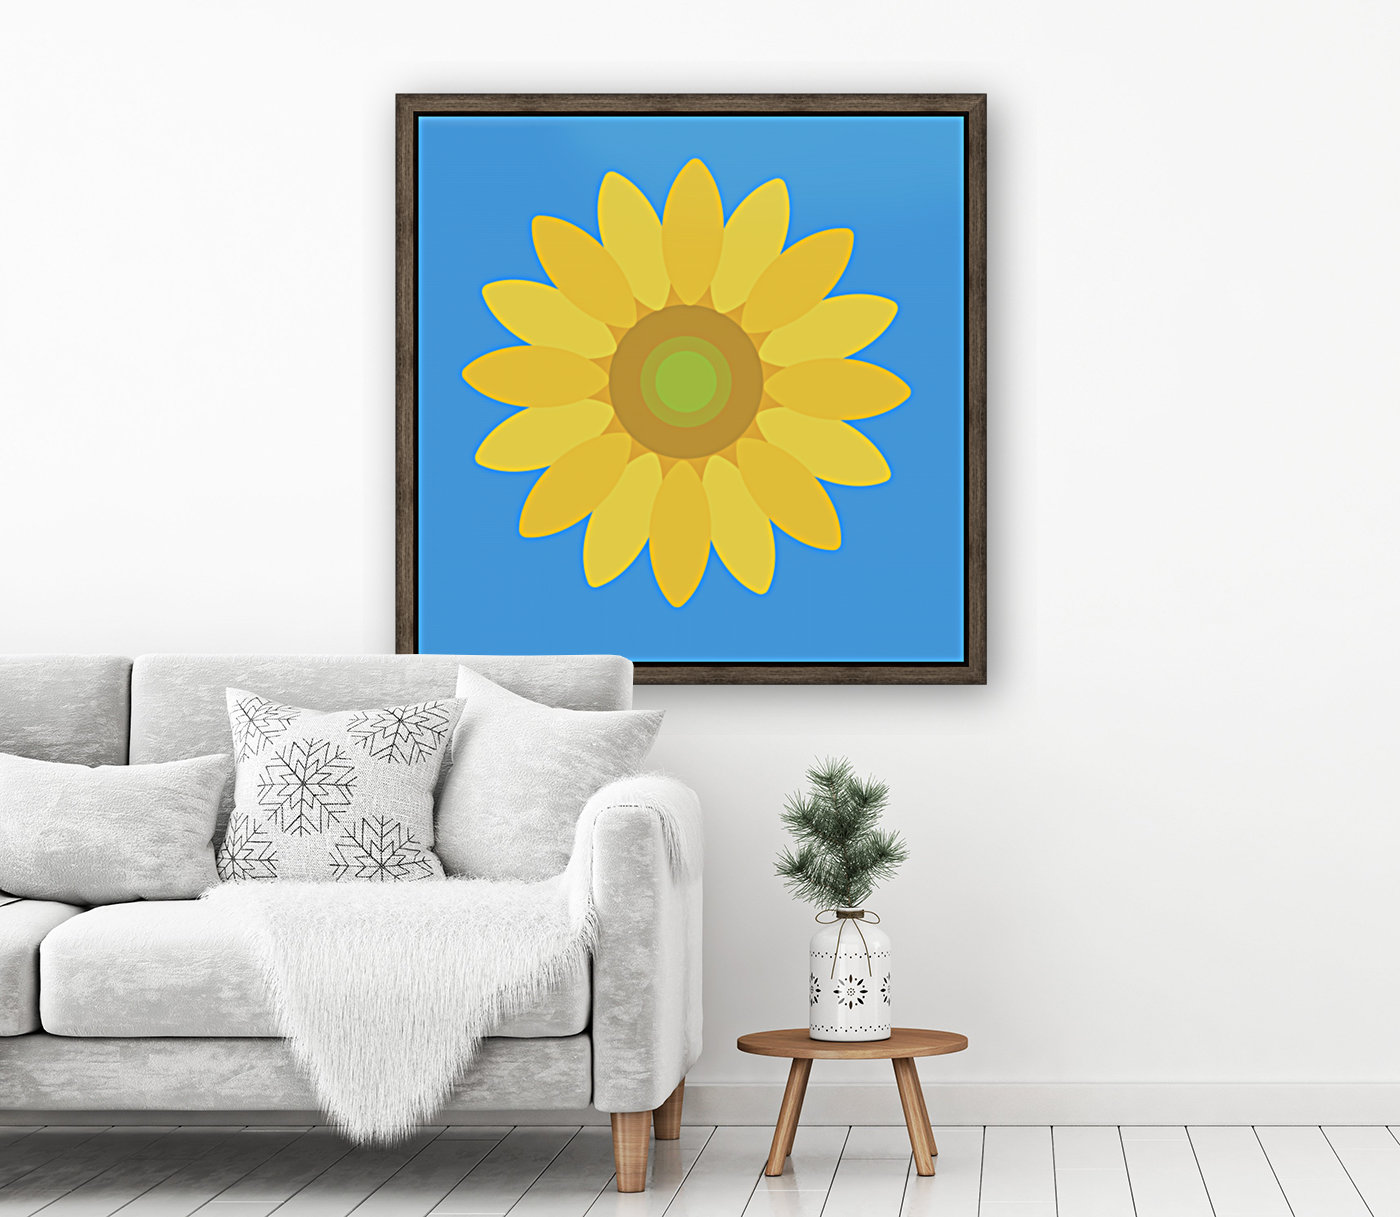 Sunflower (13)_1559876665.7609 with Floating Frame